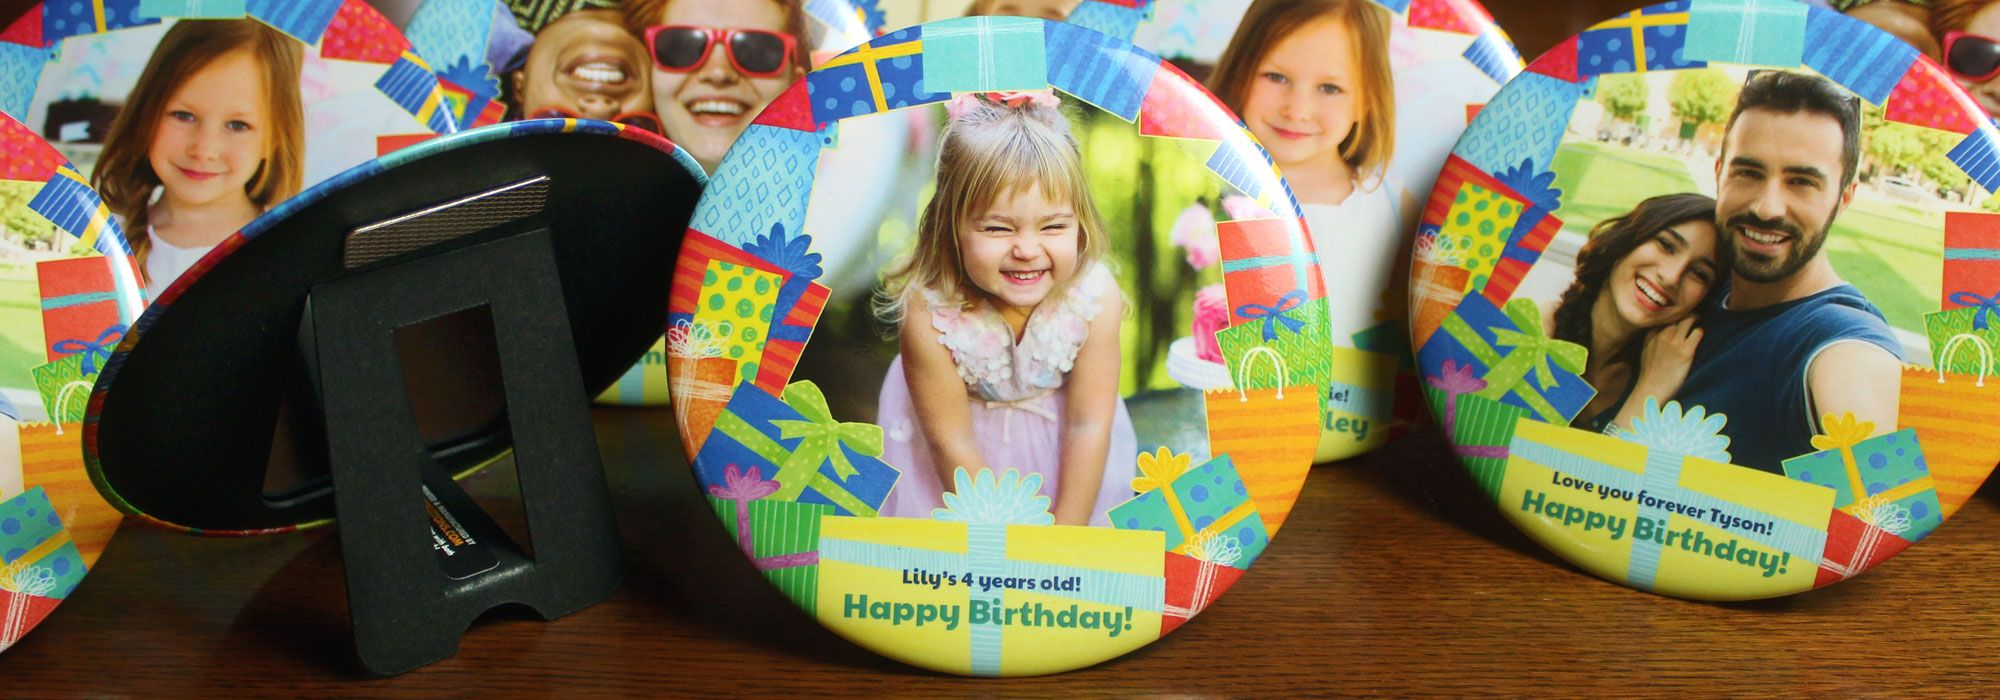 Party Presents 6 Inch magnetic easel display. Print photos in this free birthday border design! Customize yours quick with our easy tool. Makes a great affordable birthday gift!